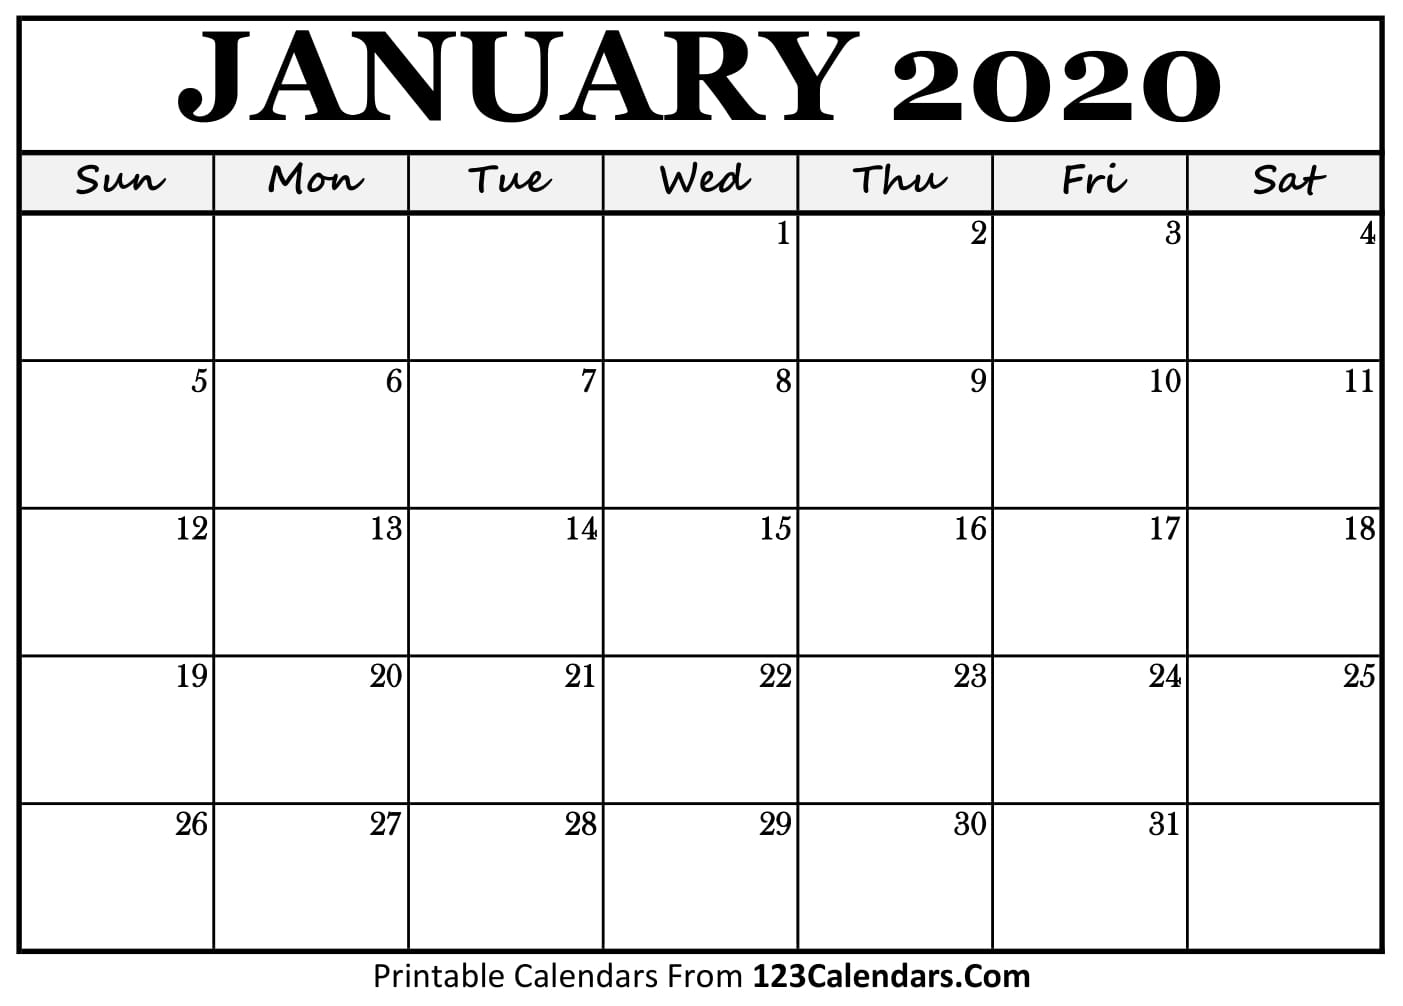 Free Printable Calendar | 123Calendars intended for Print Free Calendars 2020Without Downloading